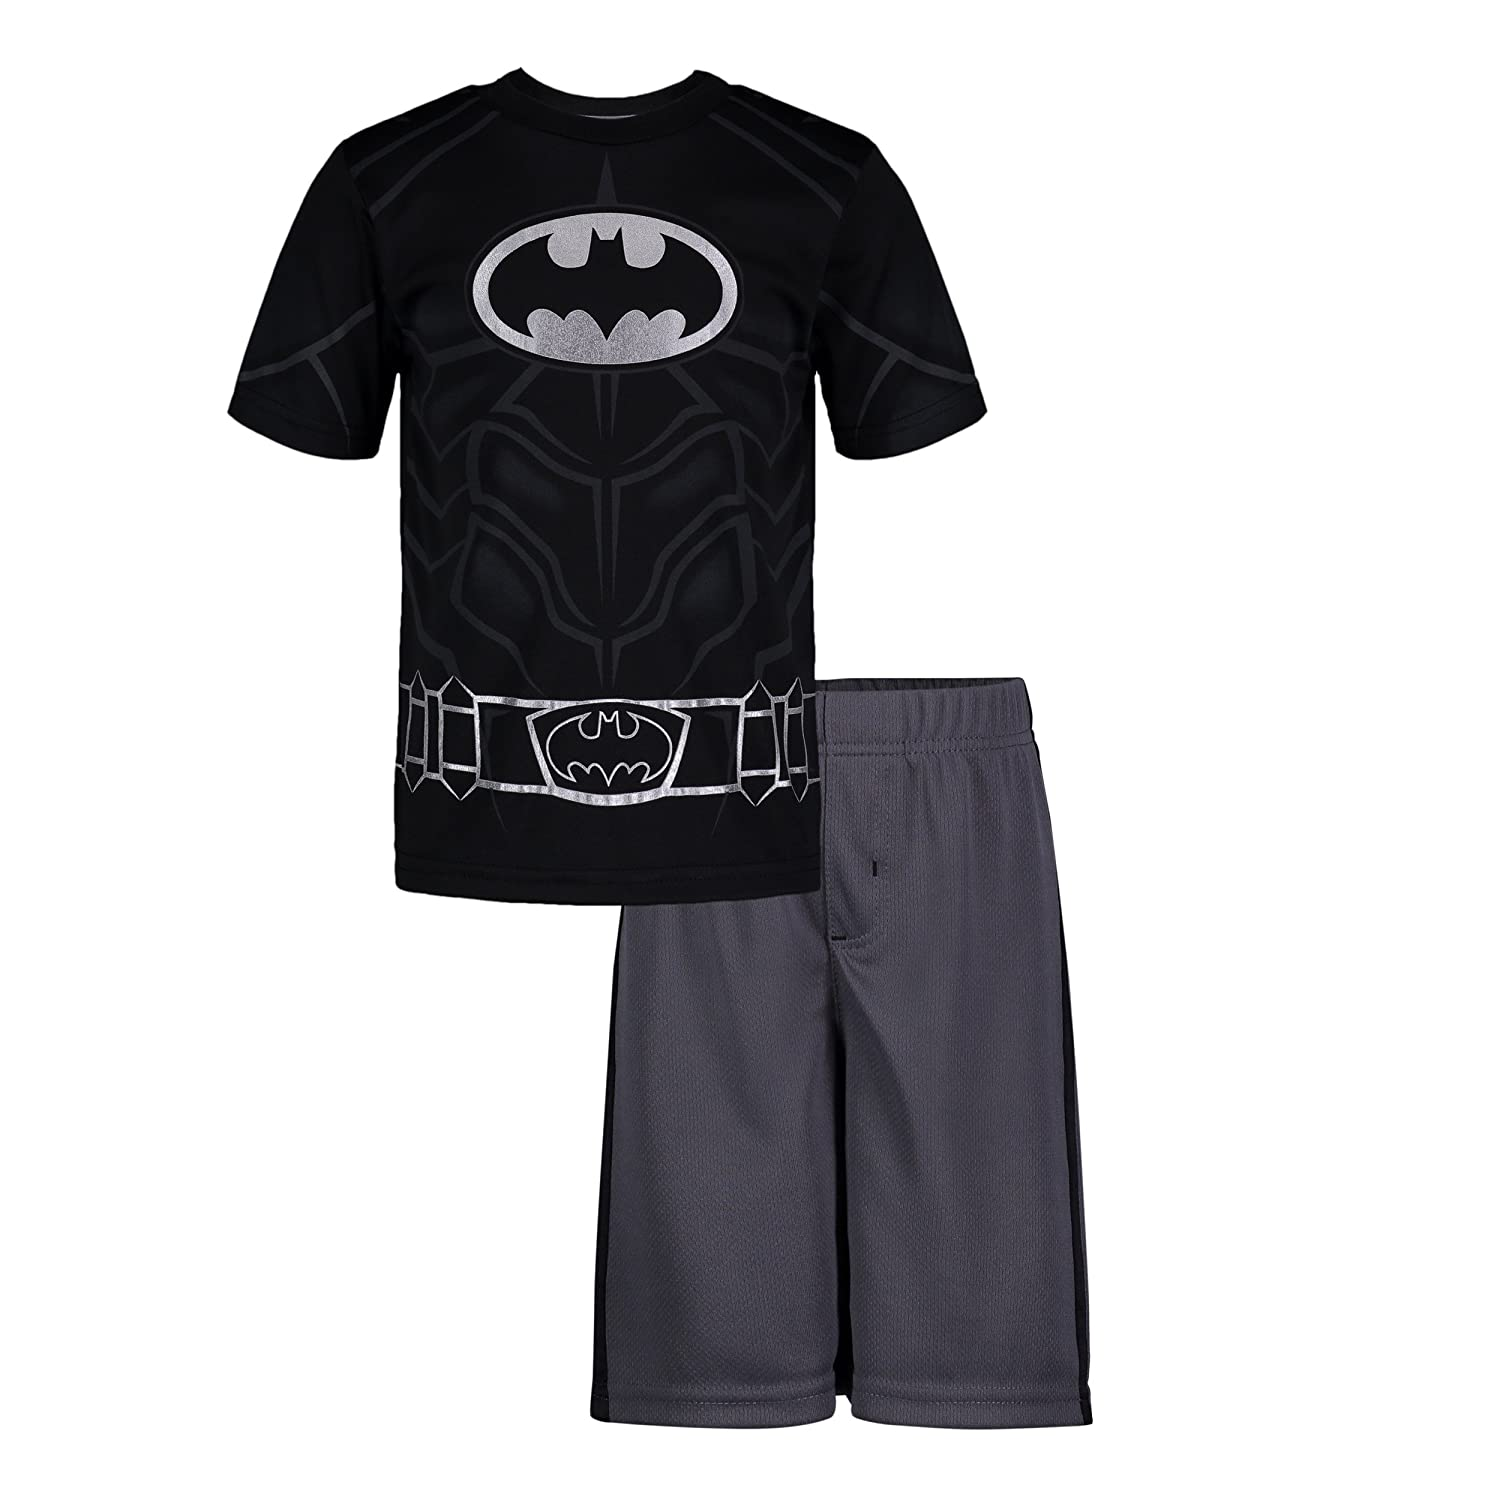 c729122ac11 T-Shirt: 100% Polyester performance jersey; Shorts: 100% Polyester flatback  mesh. Athletic tee and shorts set featuring DC Comics superheroes Batman  and ...